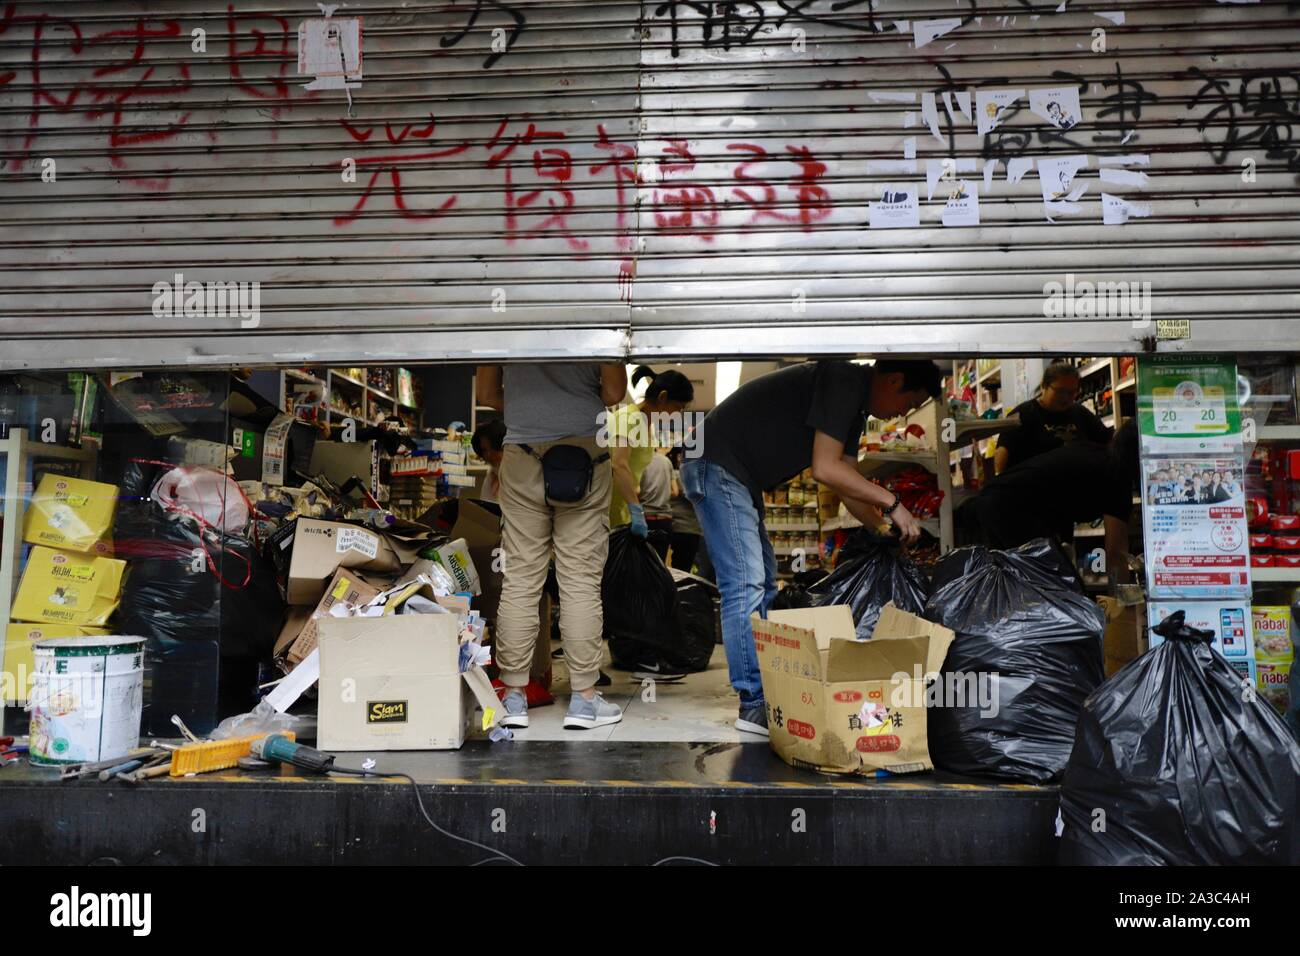 October 7, 2019, Hong Kong, CHINA: Workers clean up the mess inside the shop after the protest. Popular grocery store managed by Fukinese Capitalist Group ( a target of hate by HK pro-democracy protesters because of their Pro-Beijing position ) is being vandalized during last weekend's violent protest.Oct-7,2019 Hong Kong.ZUMA/Liau Chung-ren (Credit Image: © Liau Chung-ren/ZUMA Wire) Stock Photo